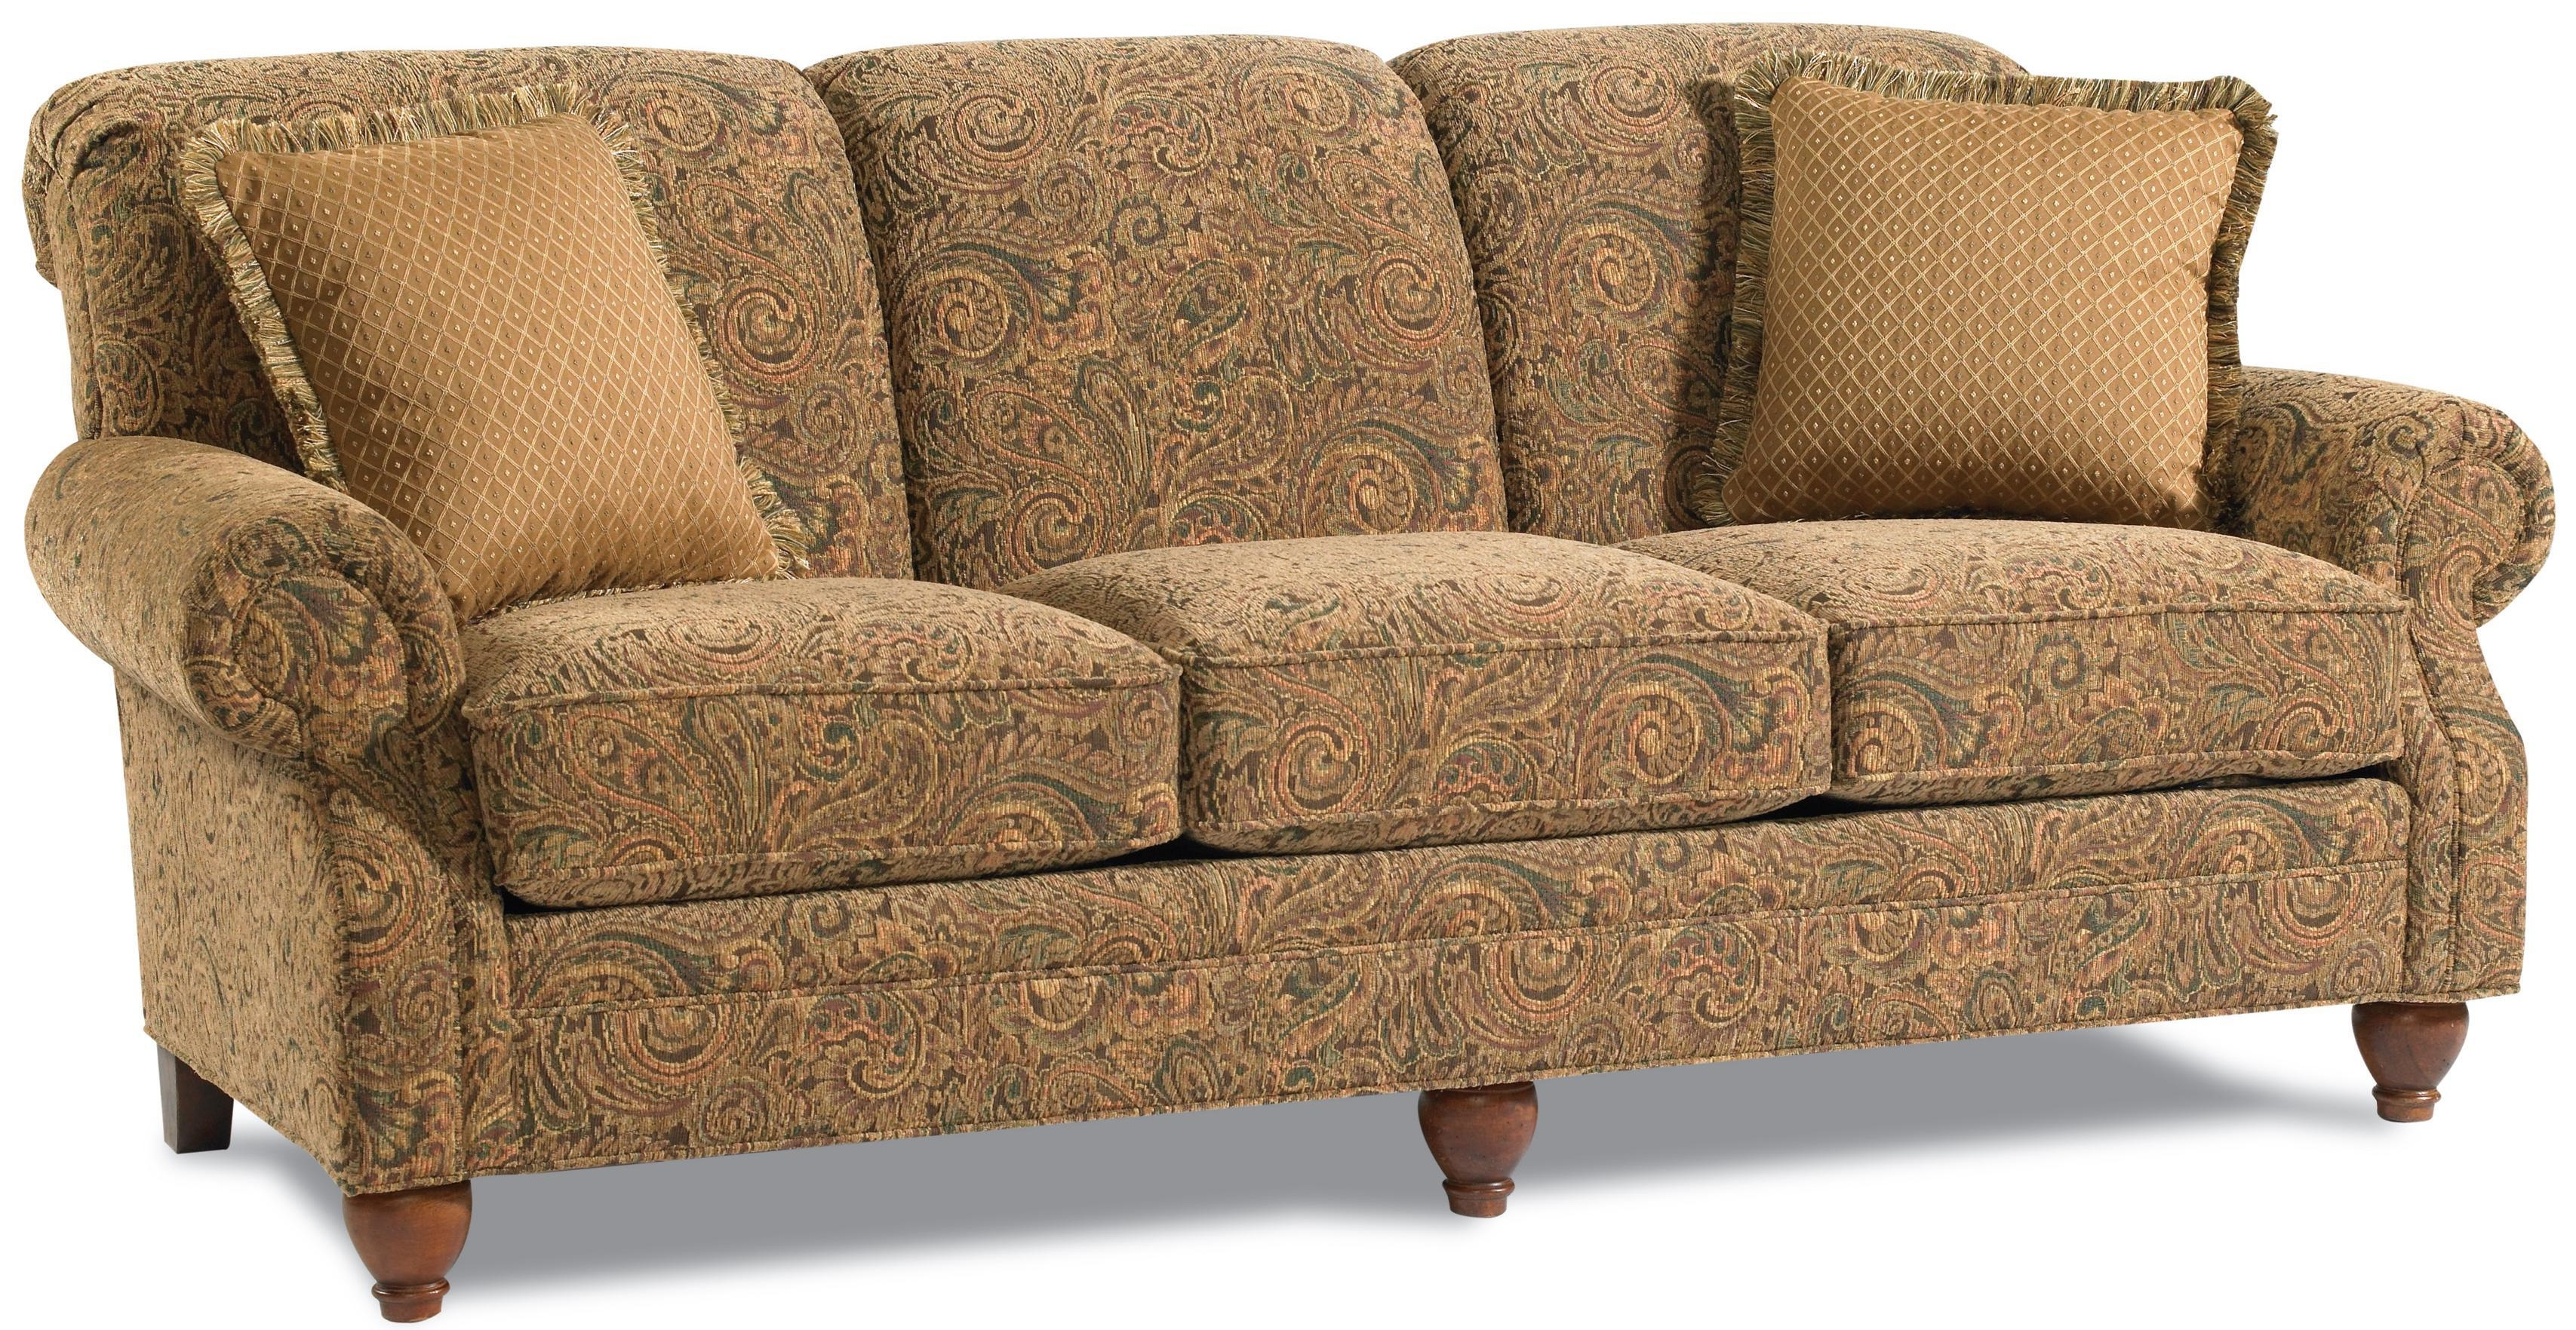 clayton marcus furniture clayton marcus sofas. Clayton Marcus Clementine 3274 Traditional Queen Sleeper Sofa With Throughout Sofas (Image 1 Furniture Tany.net